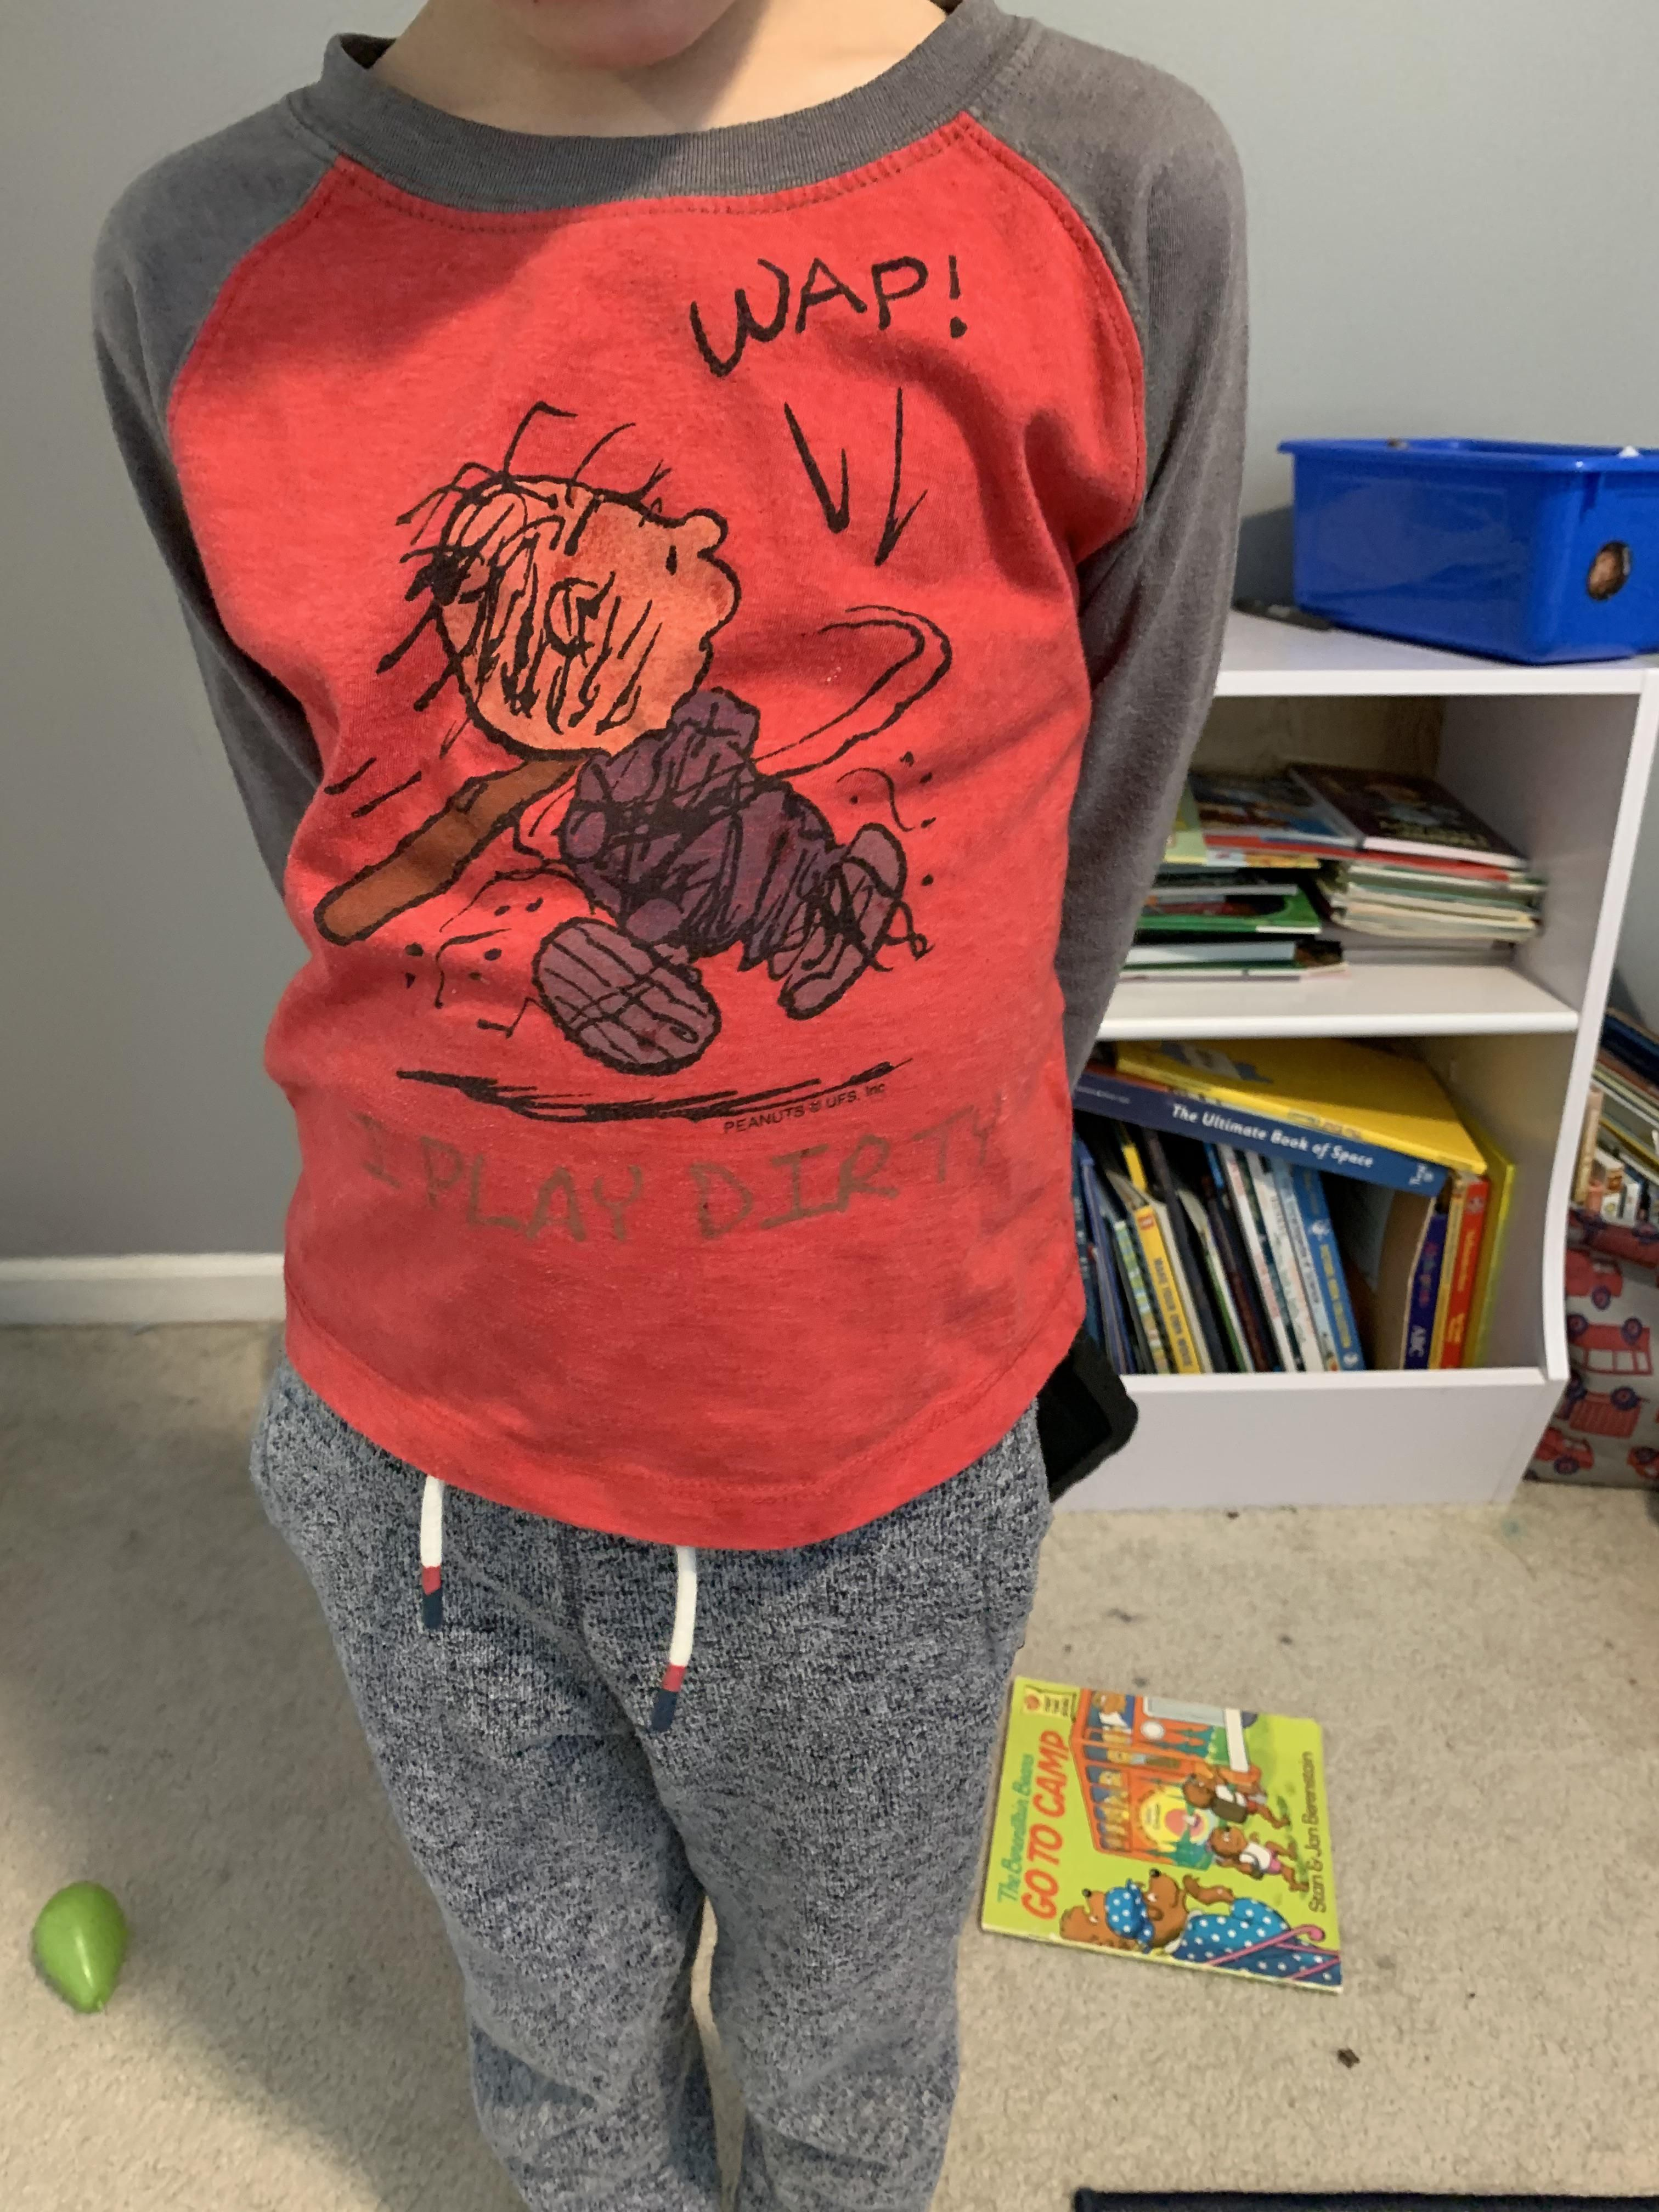 So, can my son not wear this to school anymore?